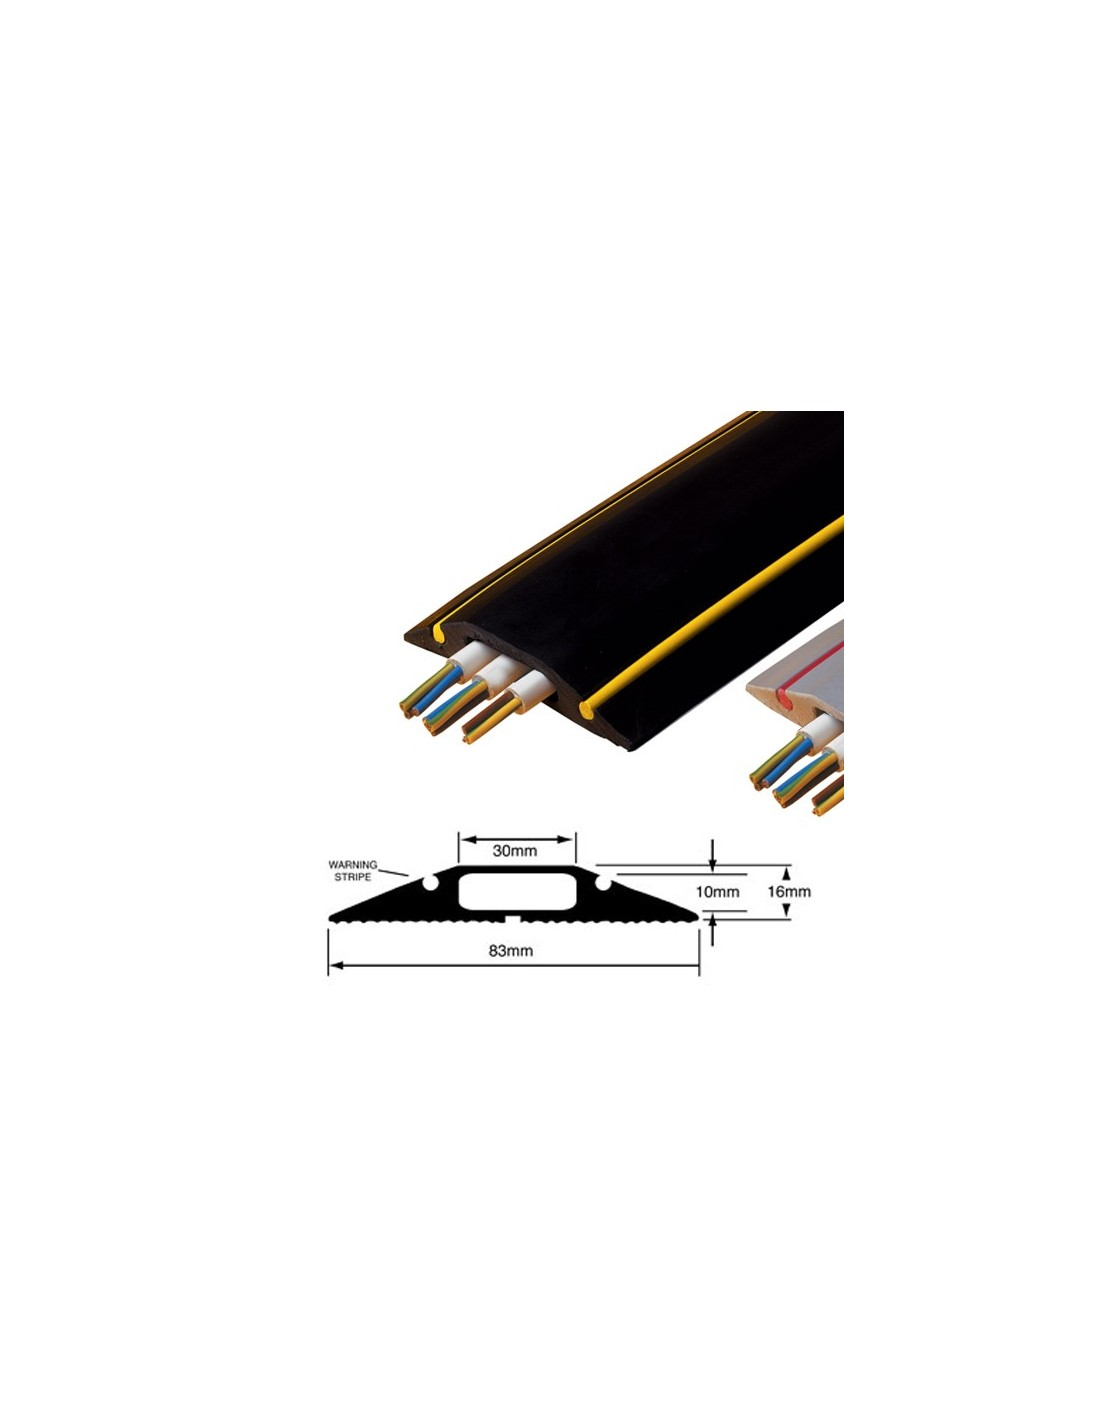 hazard warning cable tidy protector high vis cable cover. Black Bedroom Furniture Sets. Home Design Ideas